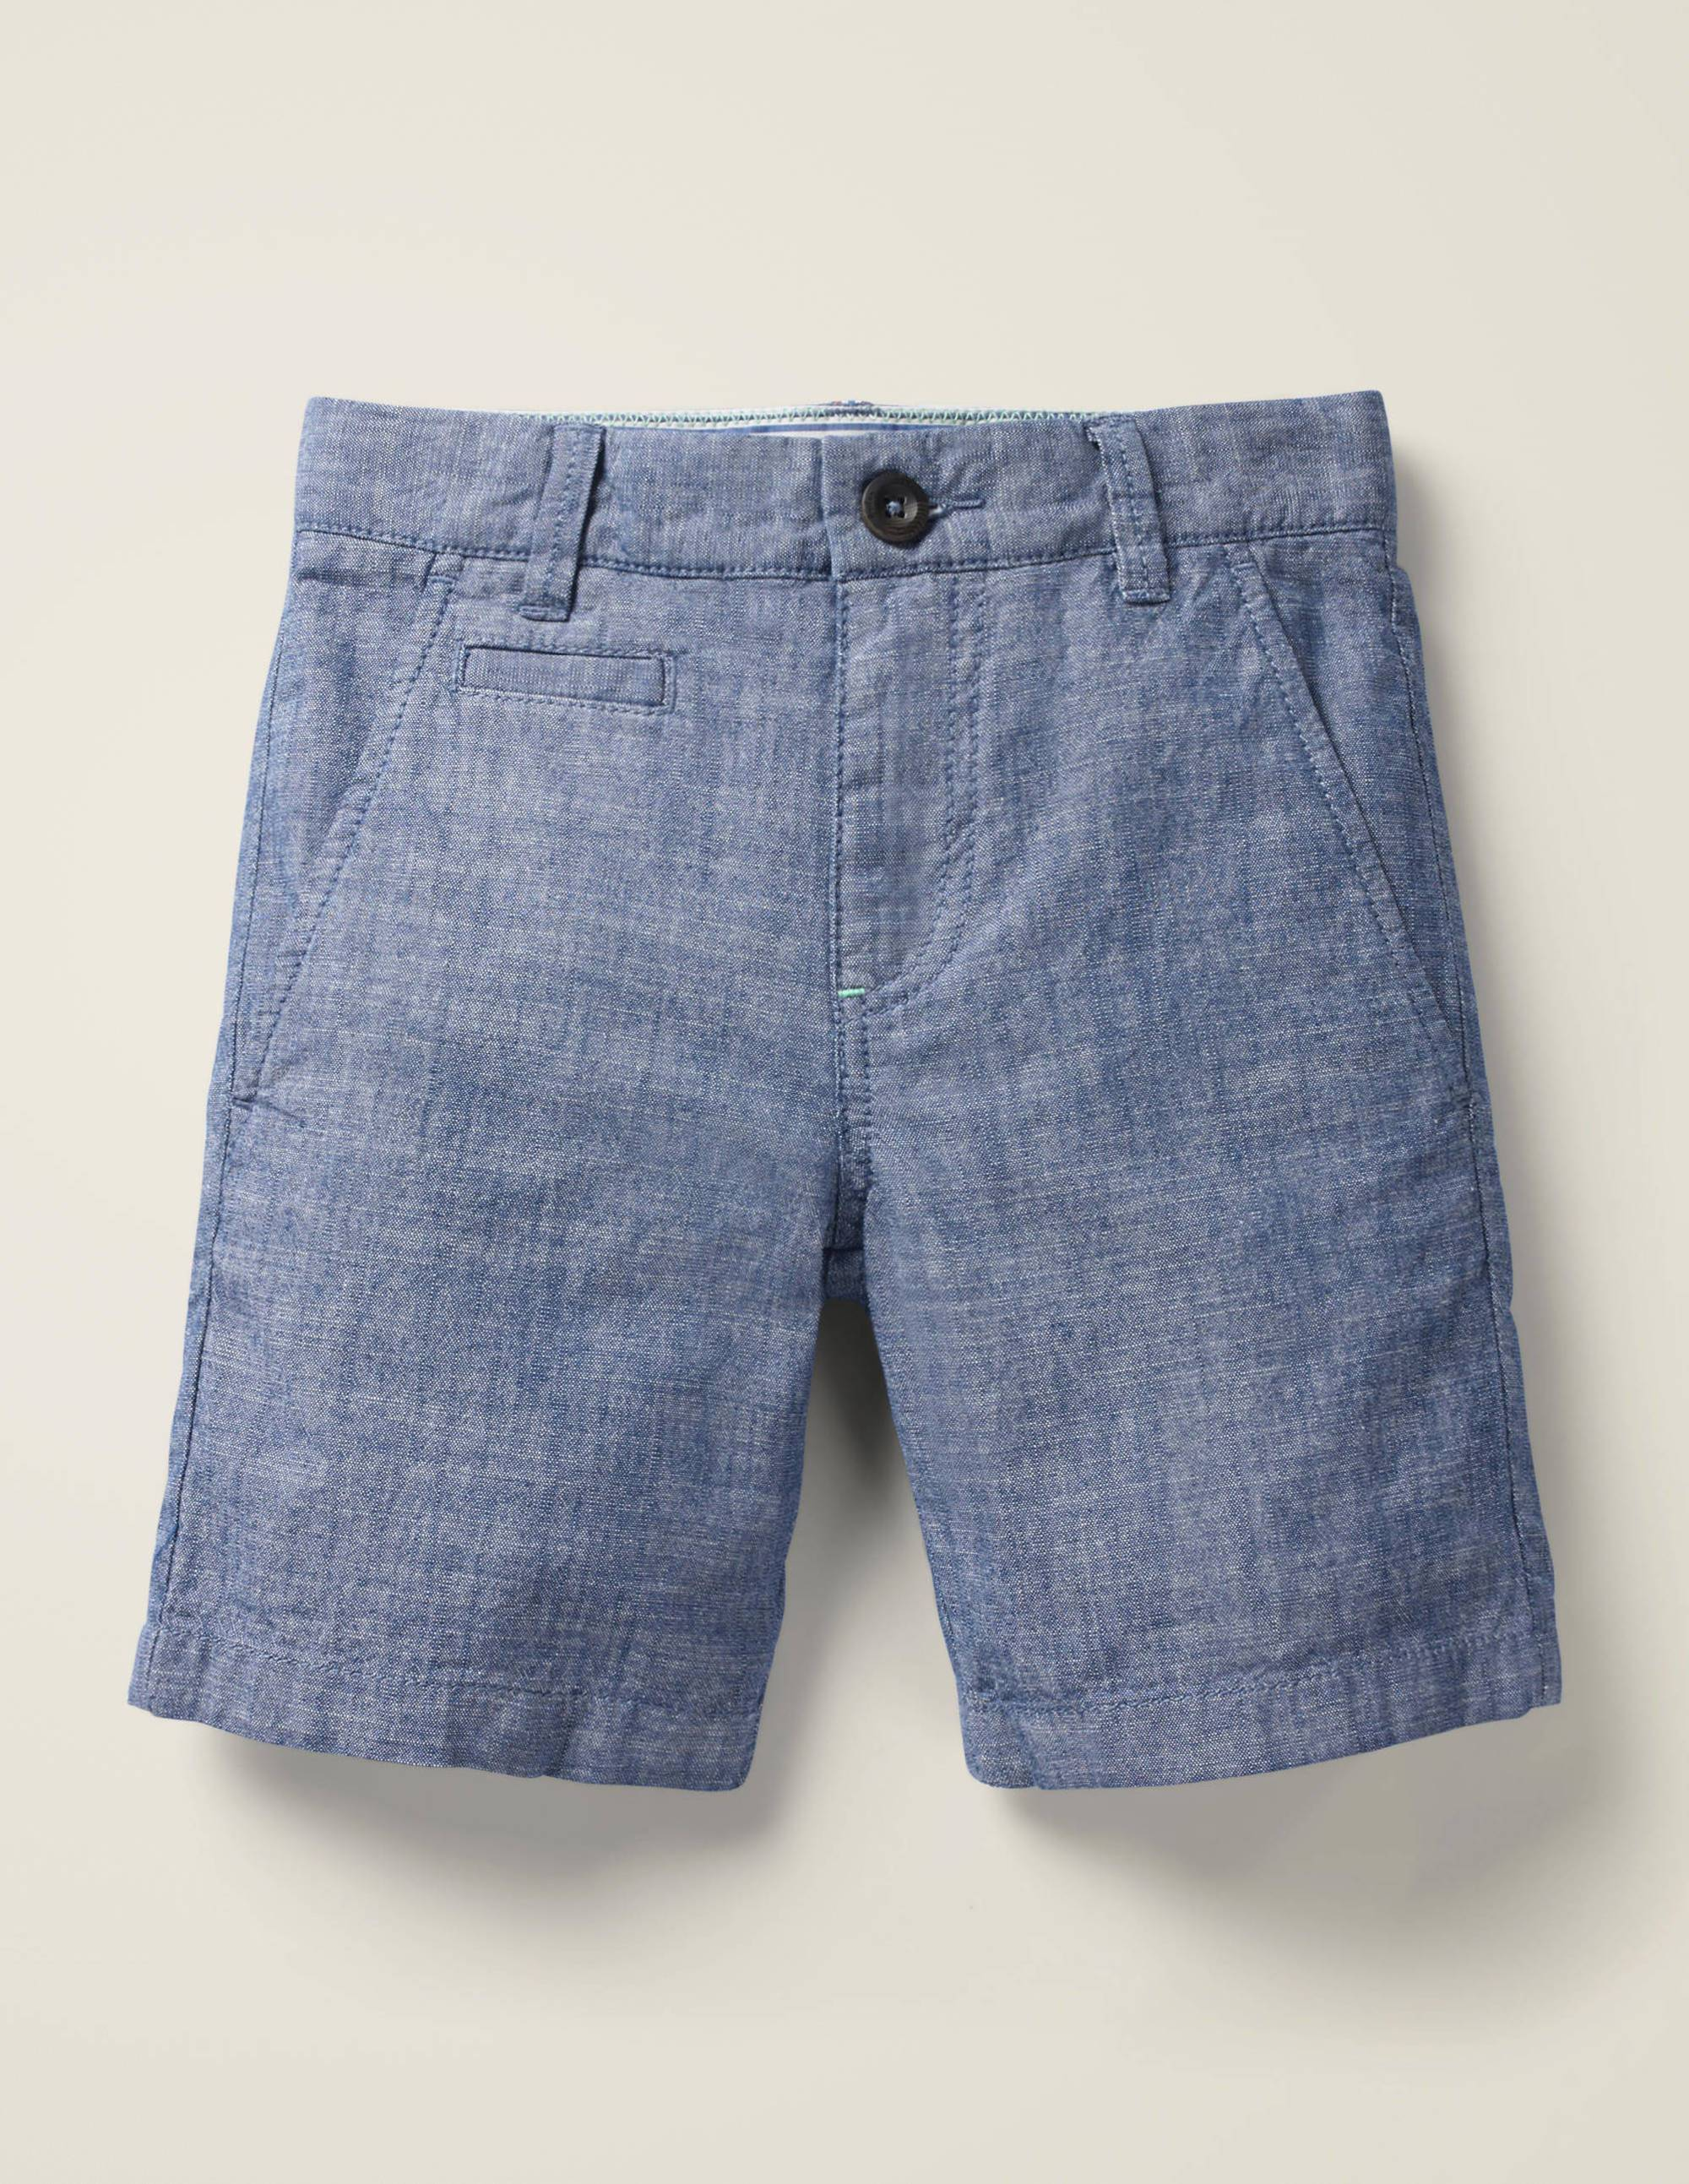 Mini Short chino MDN Femme Boden, Chambray - 3a